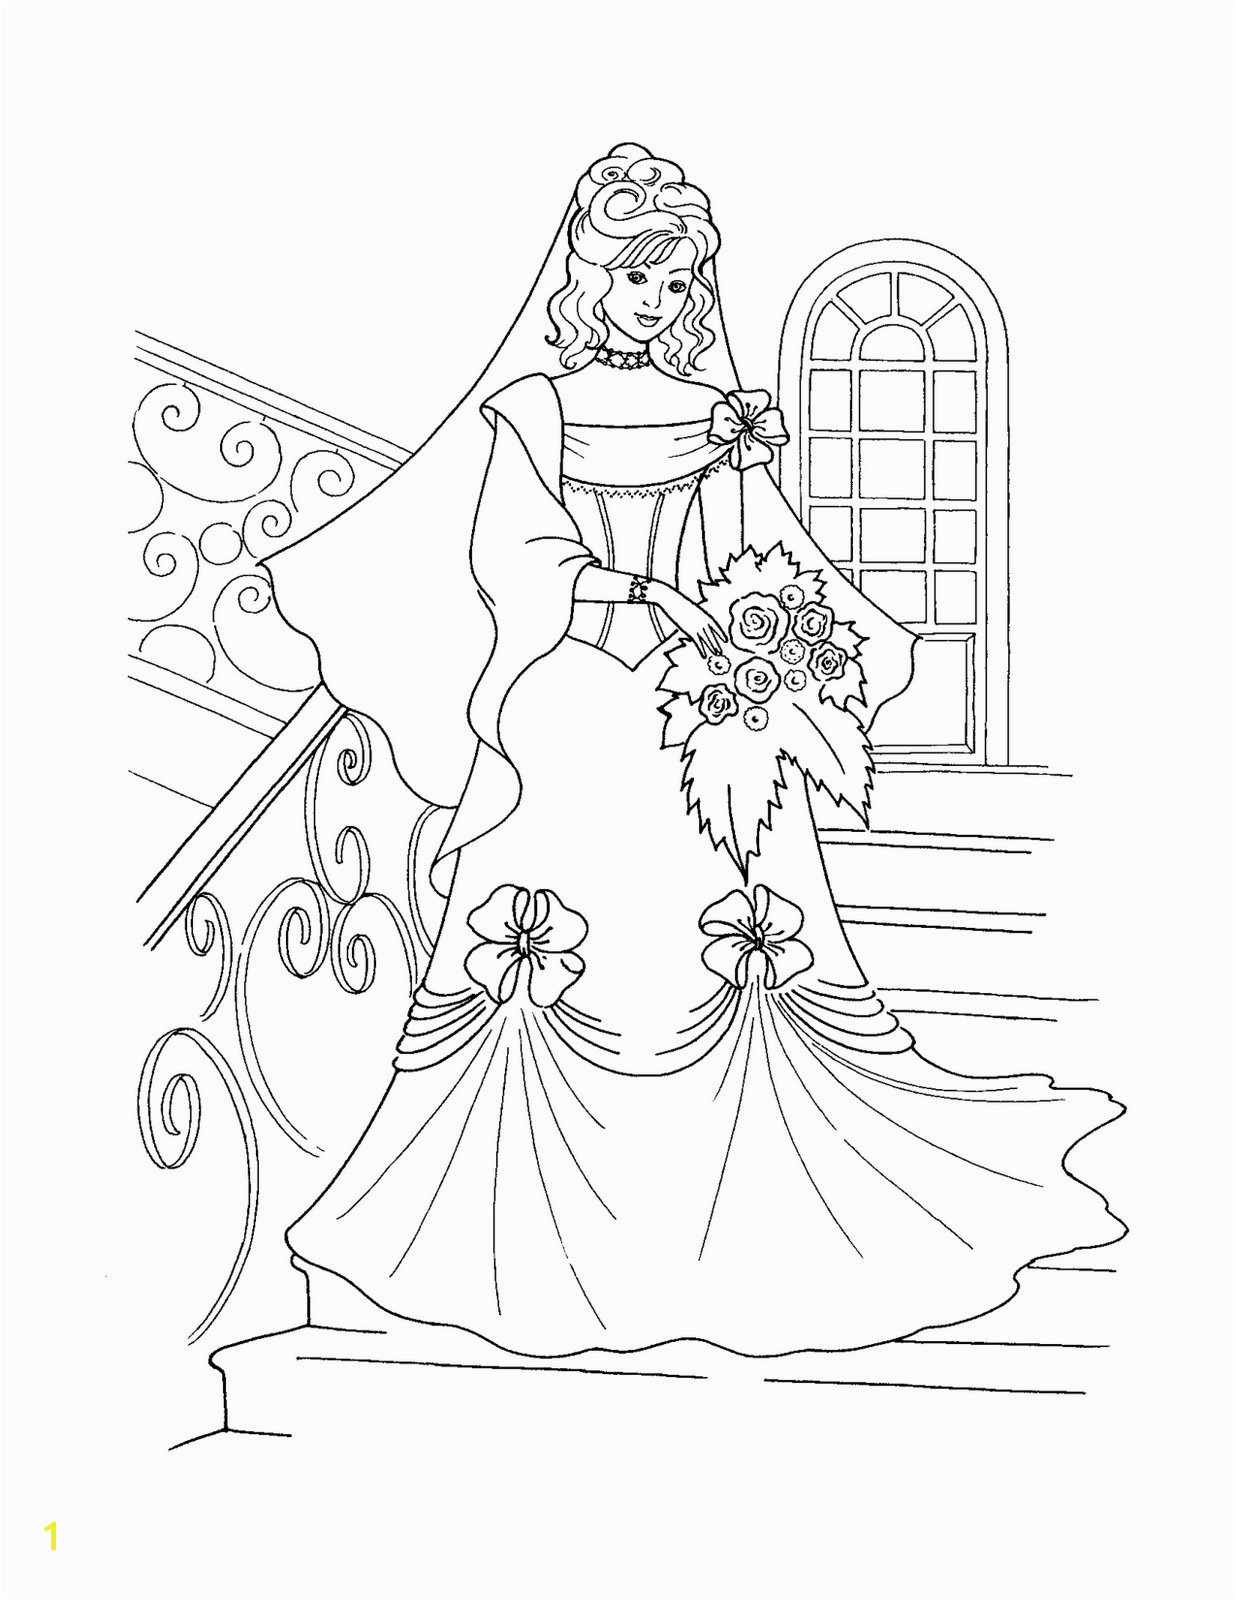 free disney princess coloring pages 17ab free disney princess coloring pages unique fresh chuggington coloring pages free printabl pin od tracy graph